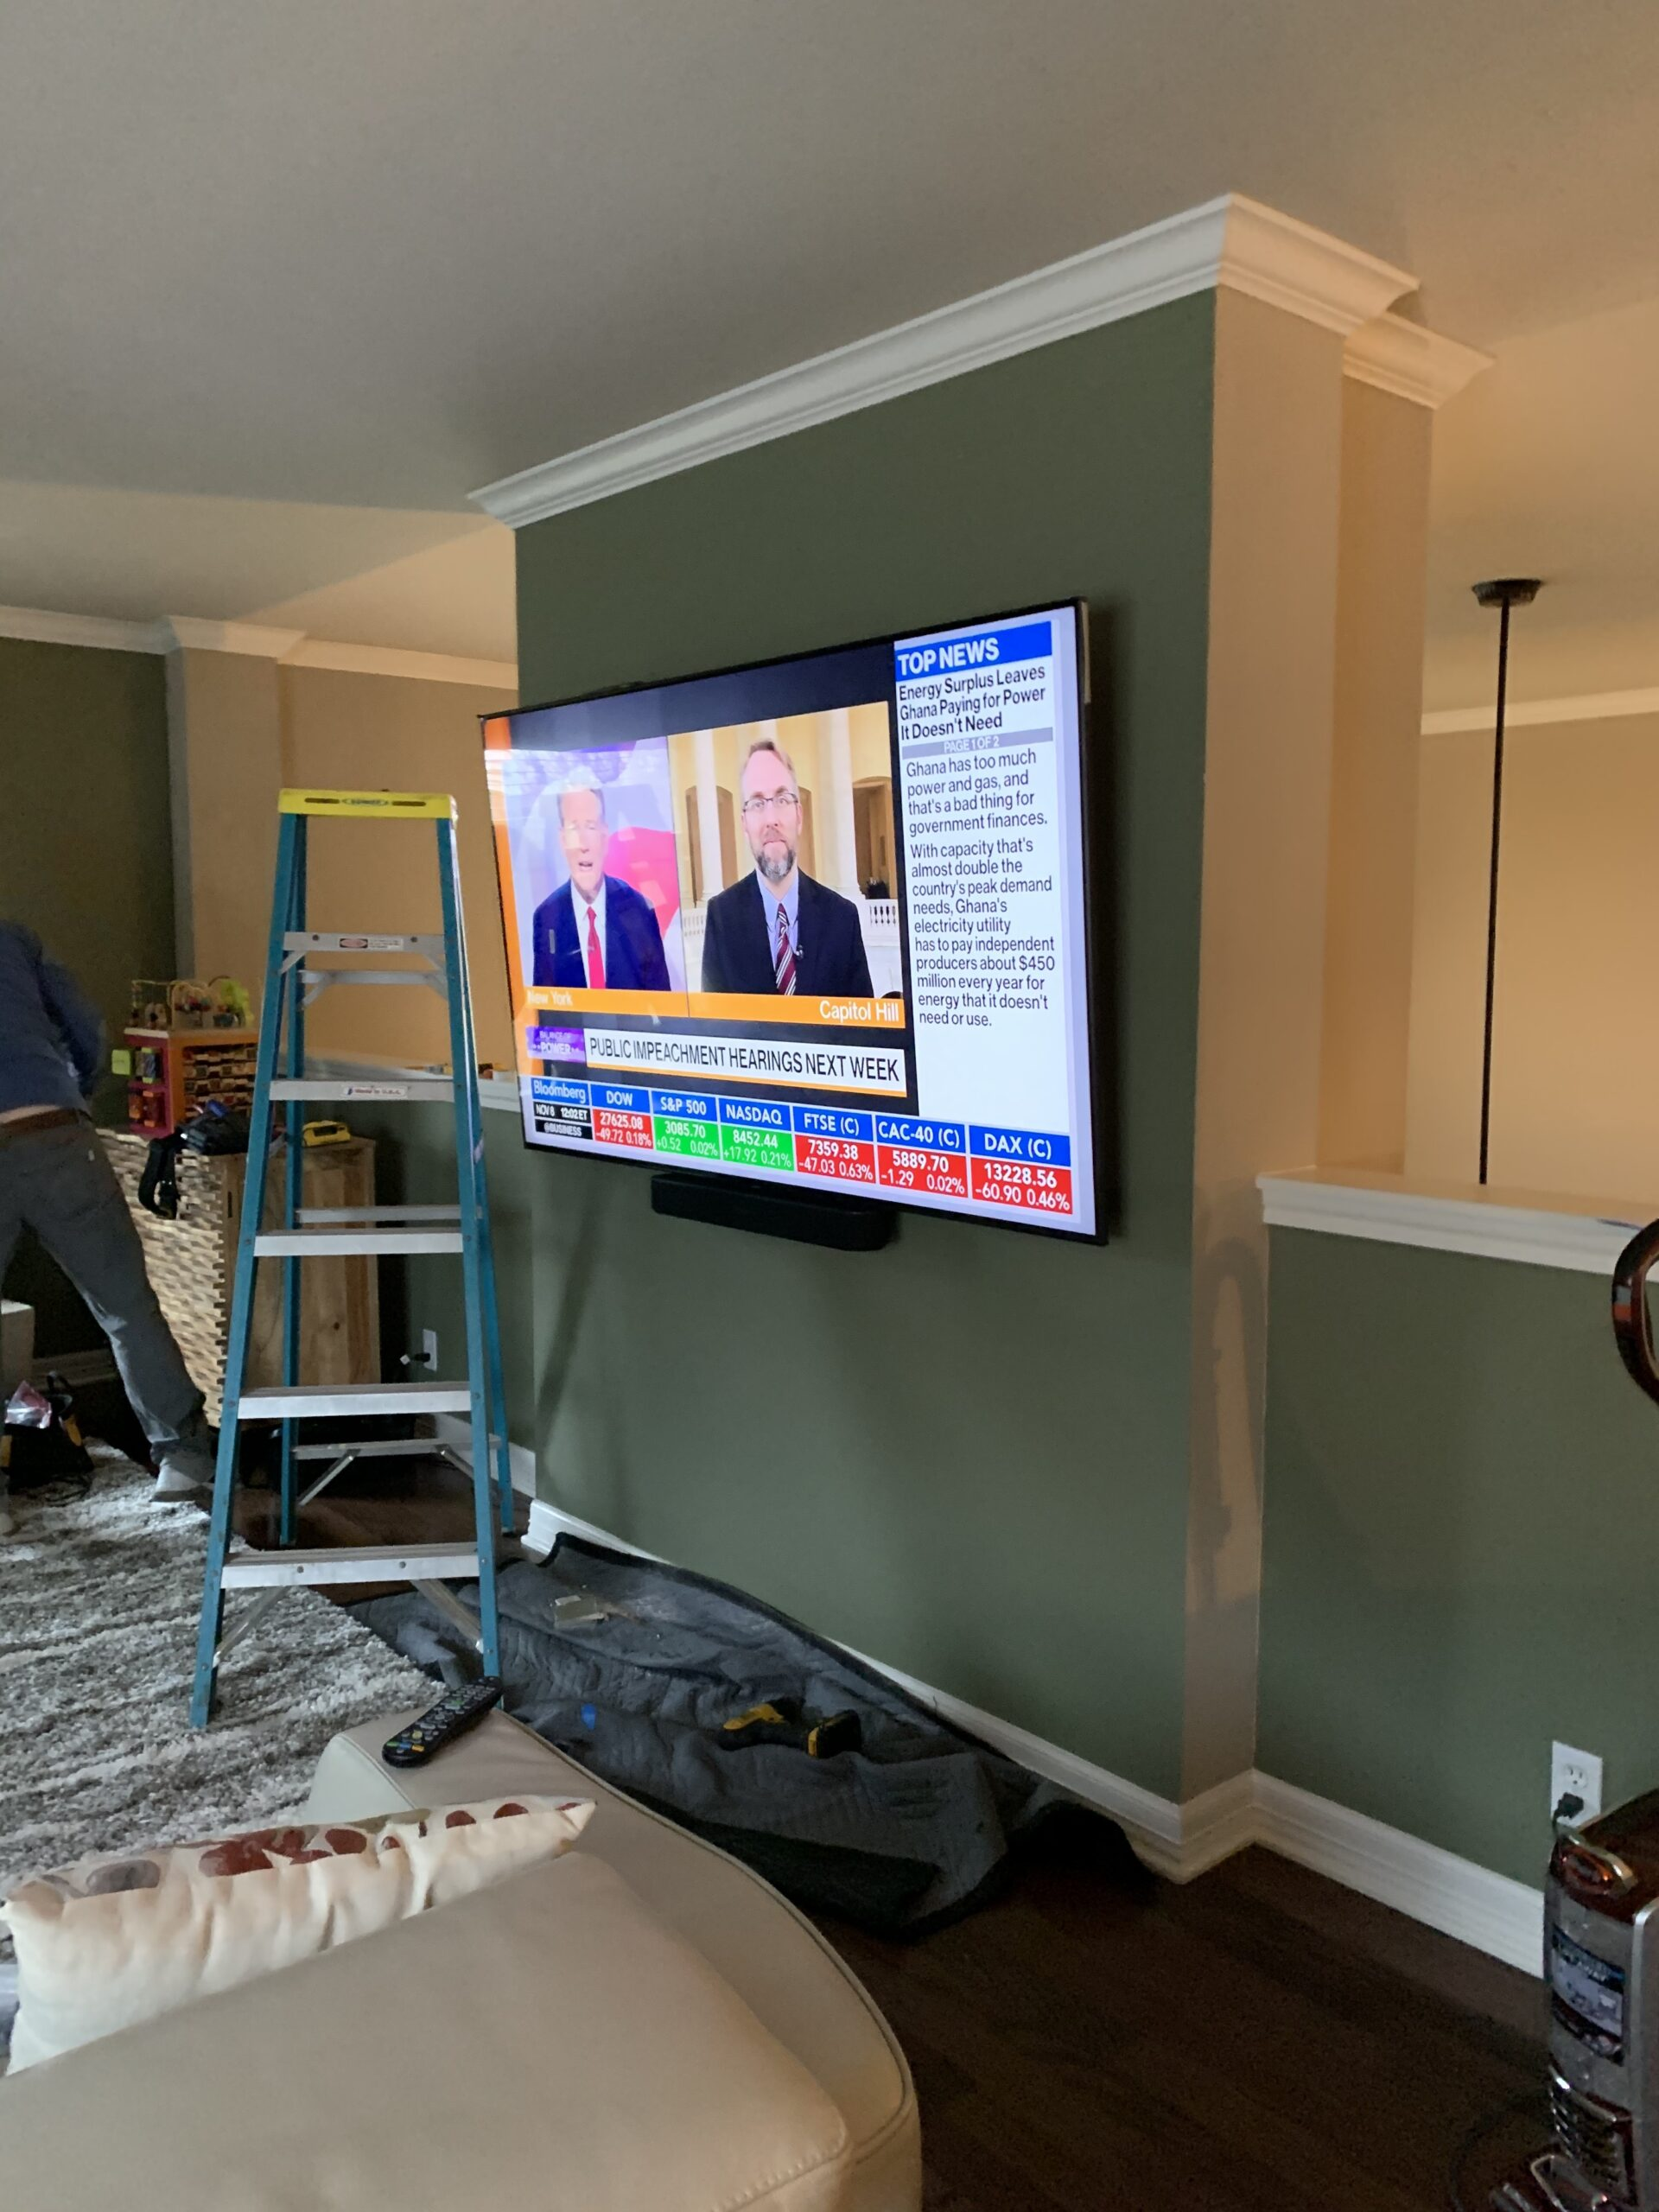 Large flat screen smart controlled TV mounted on wall